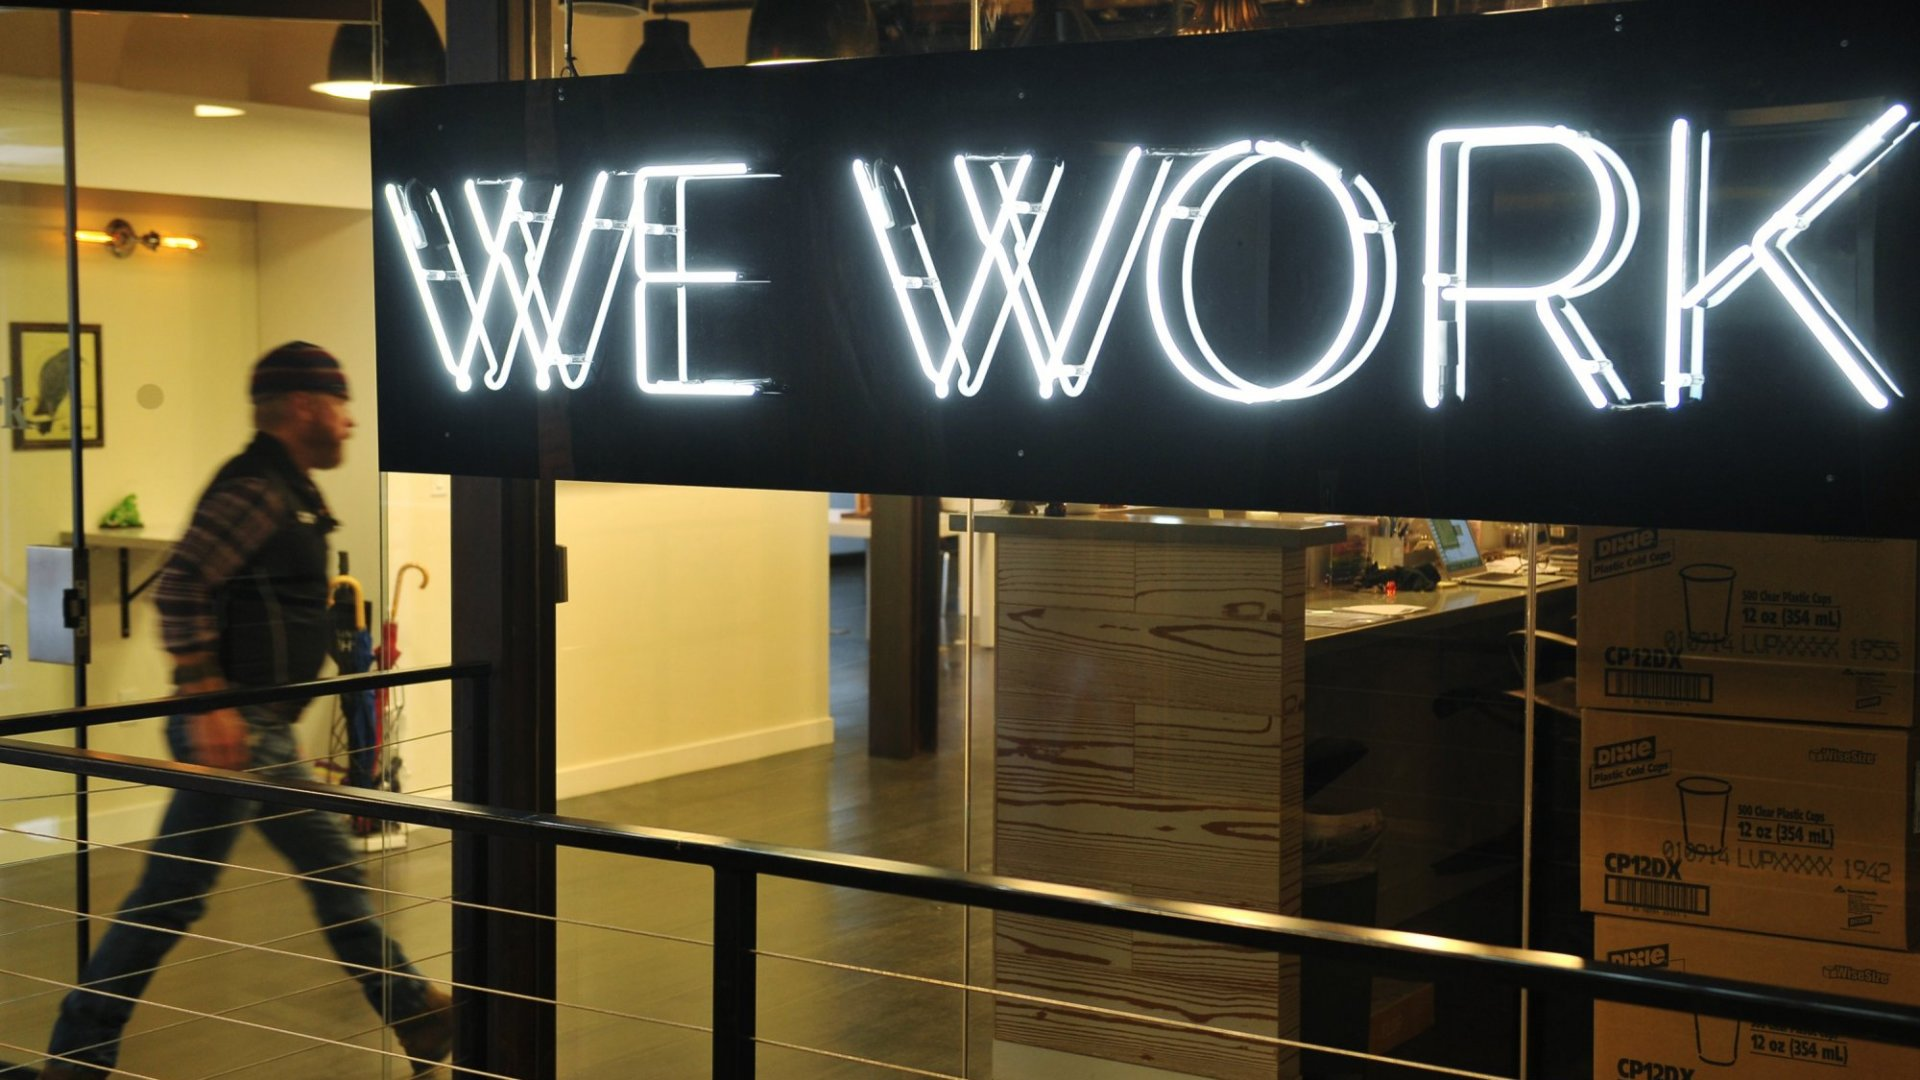 SoftBank Backed Out of Its $16 Billon Majority Stake in WeWork and Is Investing $2 Billon Instead